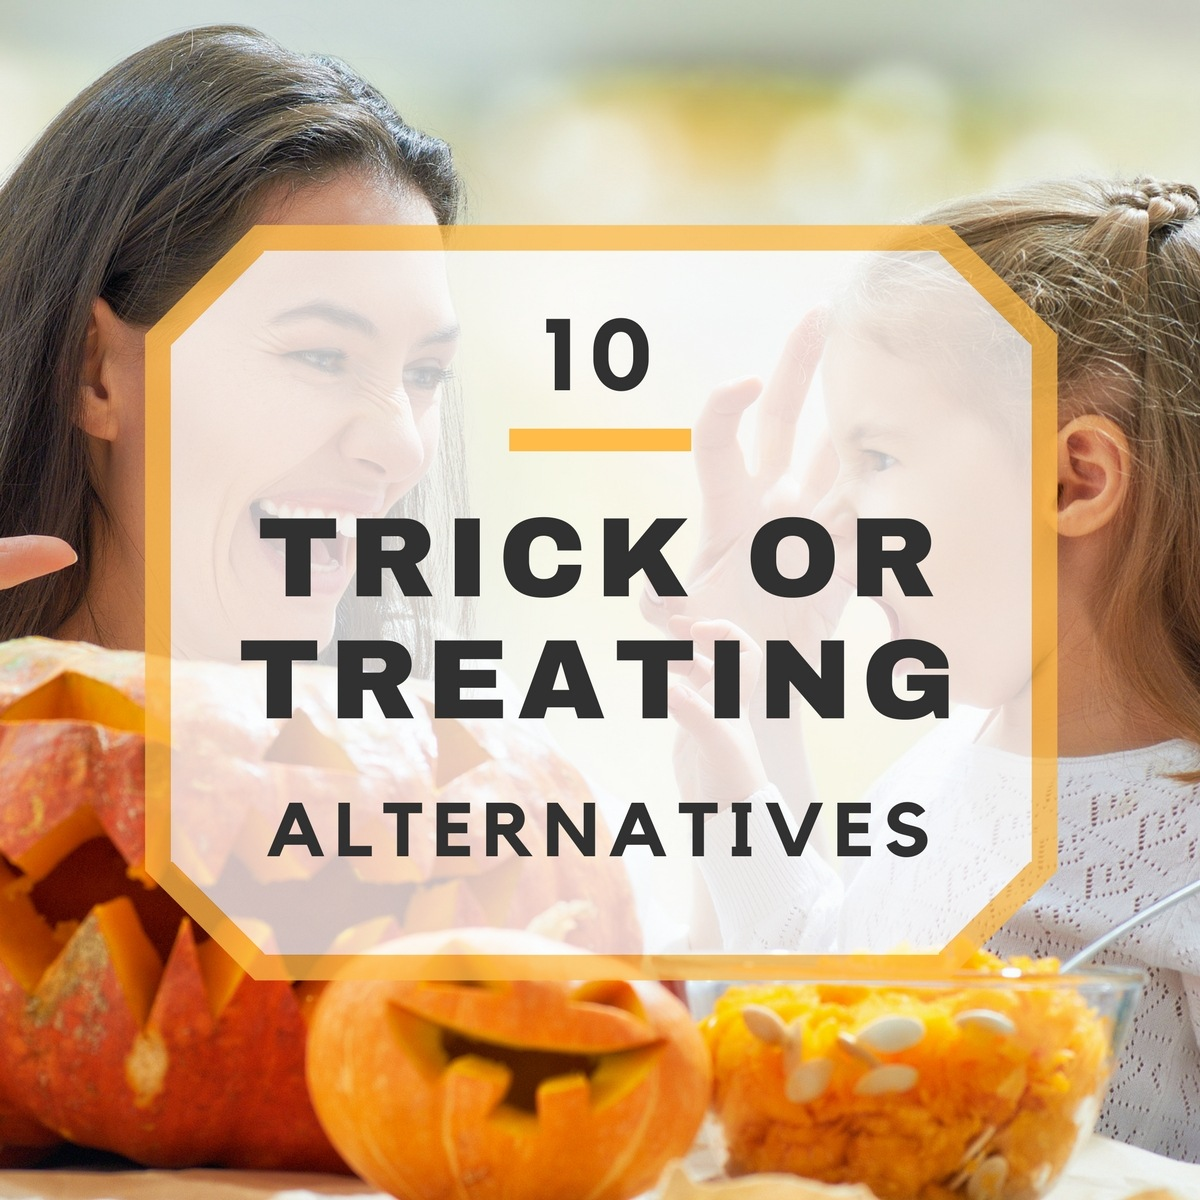 10 Sweet Alternatives to Trick-or-Treating